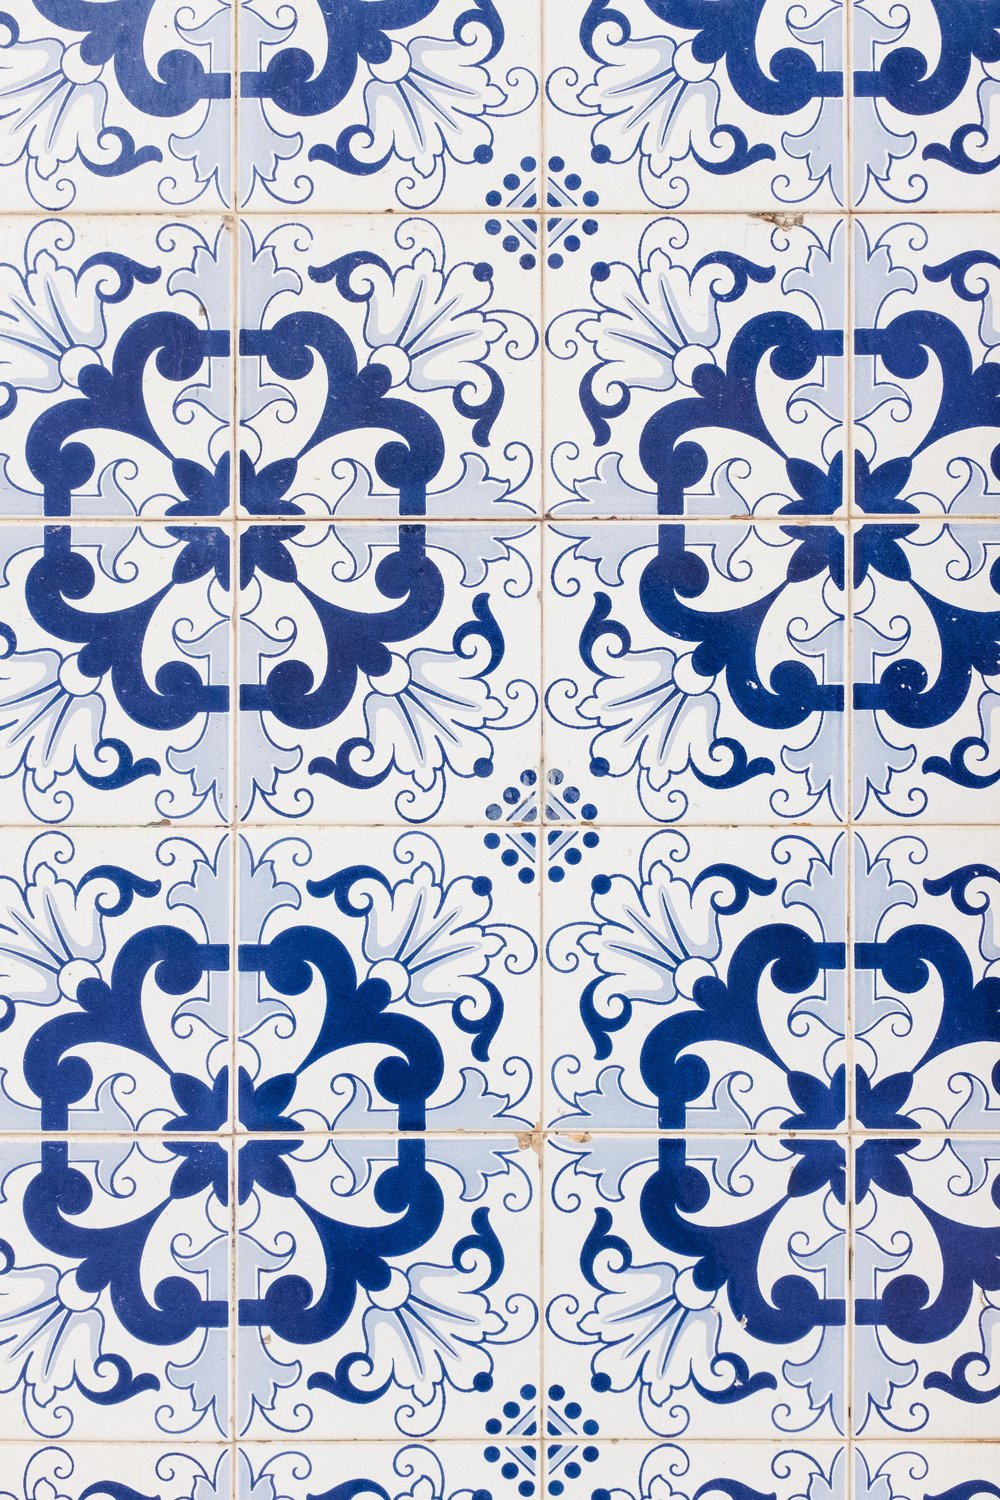 lisbon-portugal-azulejos-tiles-blue-white